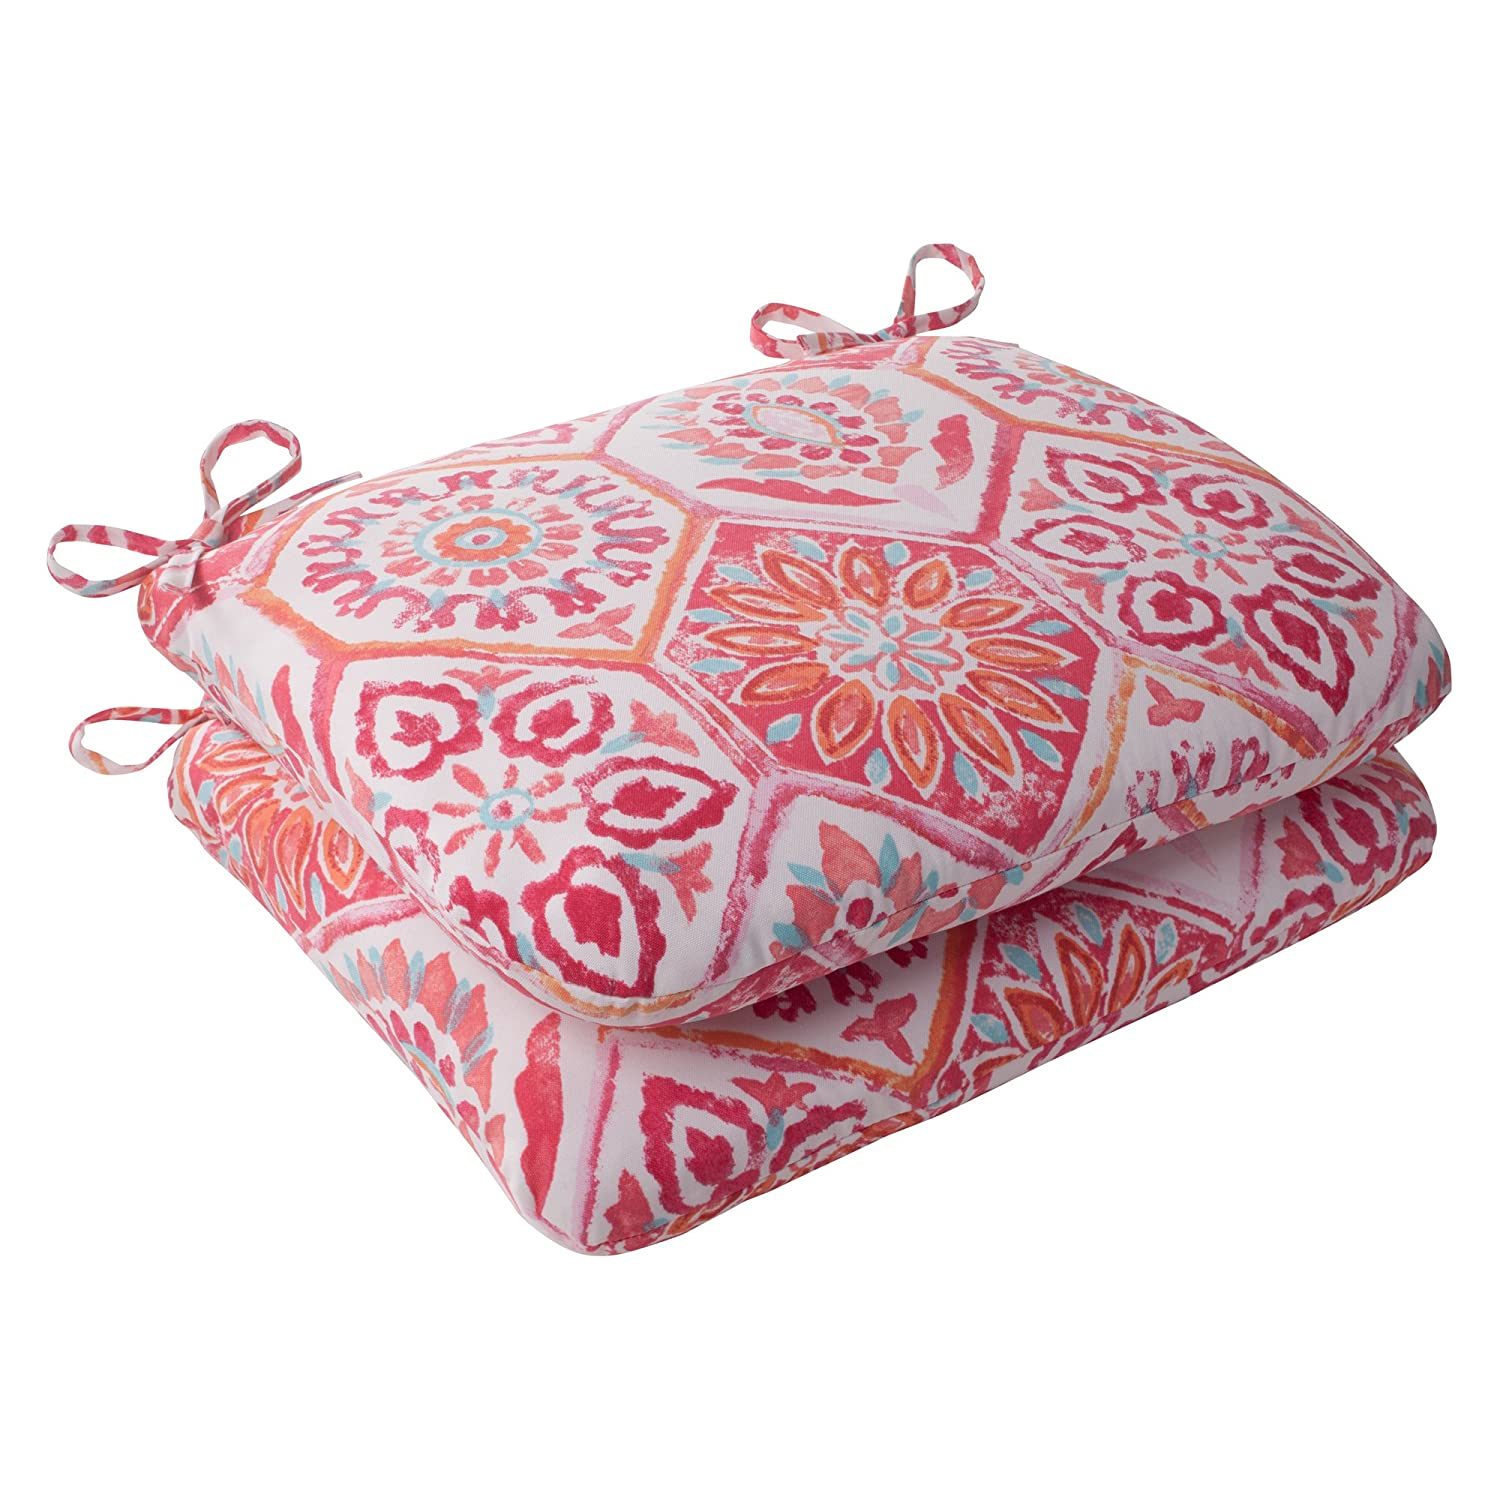 Pillow Perfect Outdoor Summer Breeze Rounded Seat Cushion, Flame, Set of 2